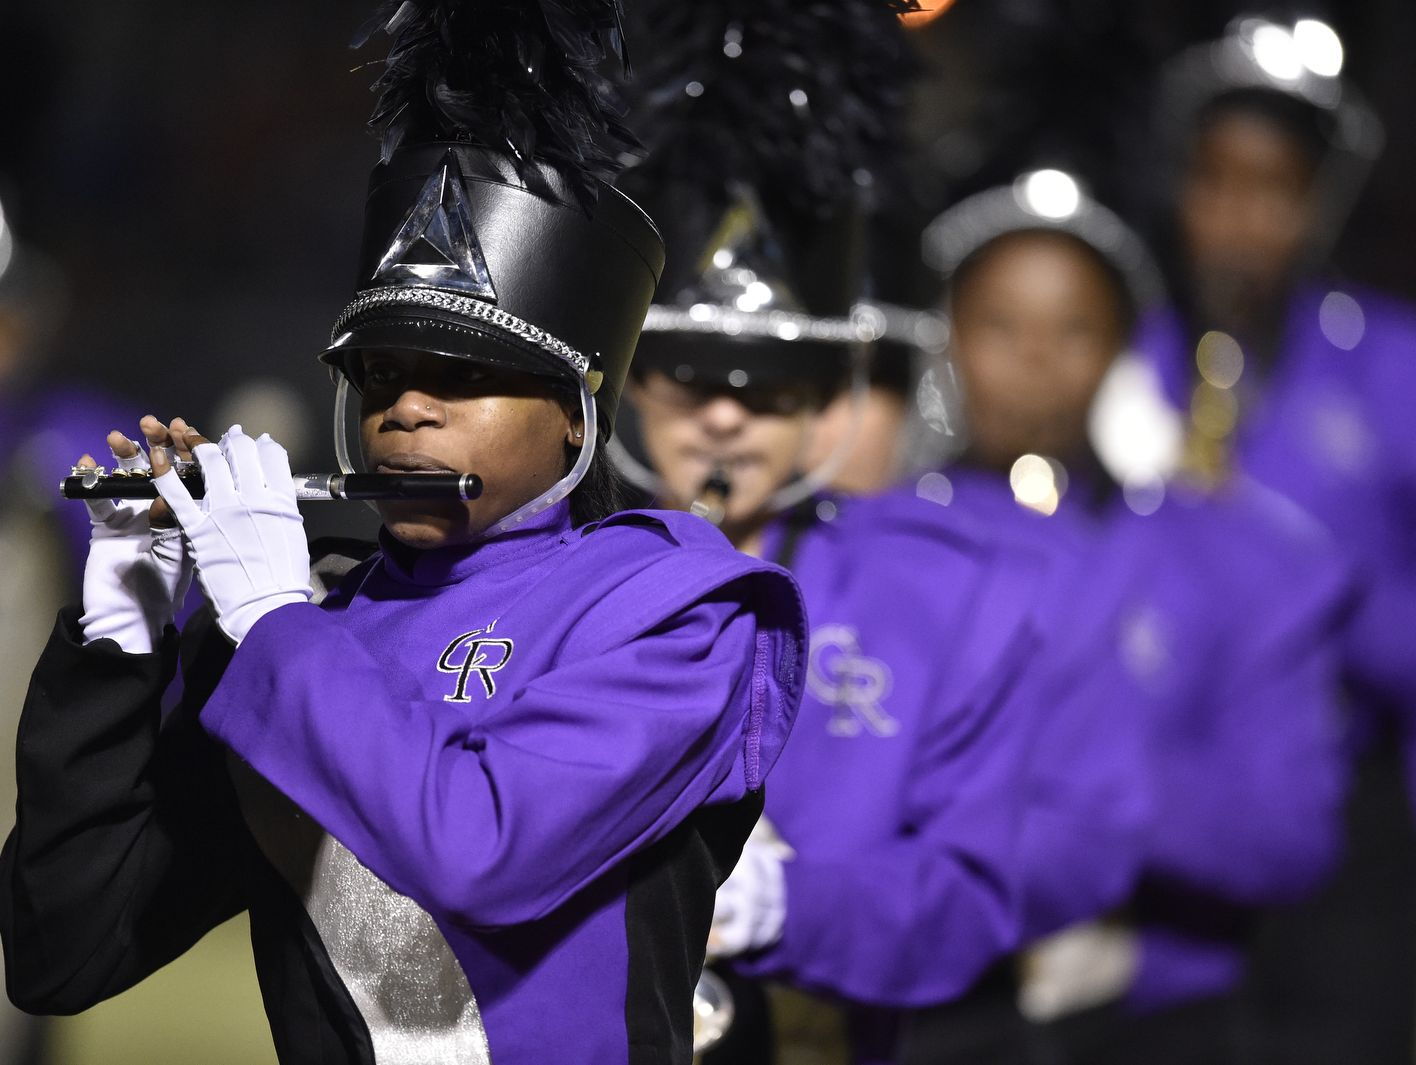 Cane Ridge band performs at the half of the game against Summit on Friday, November 4, 2016.